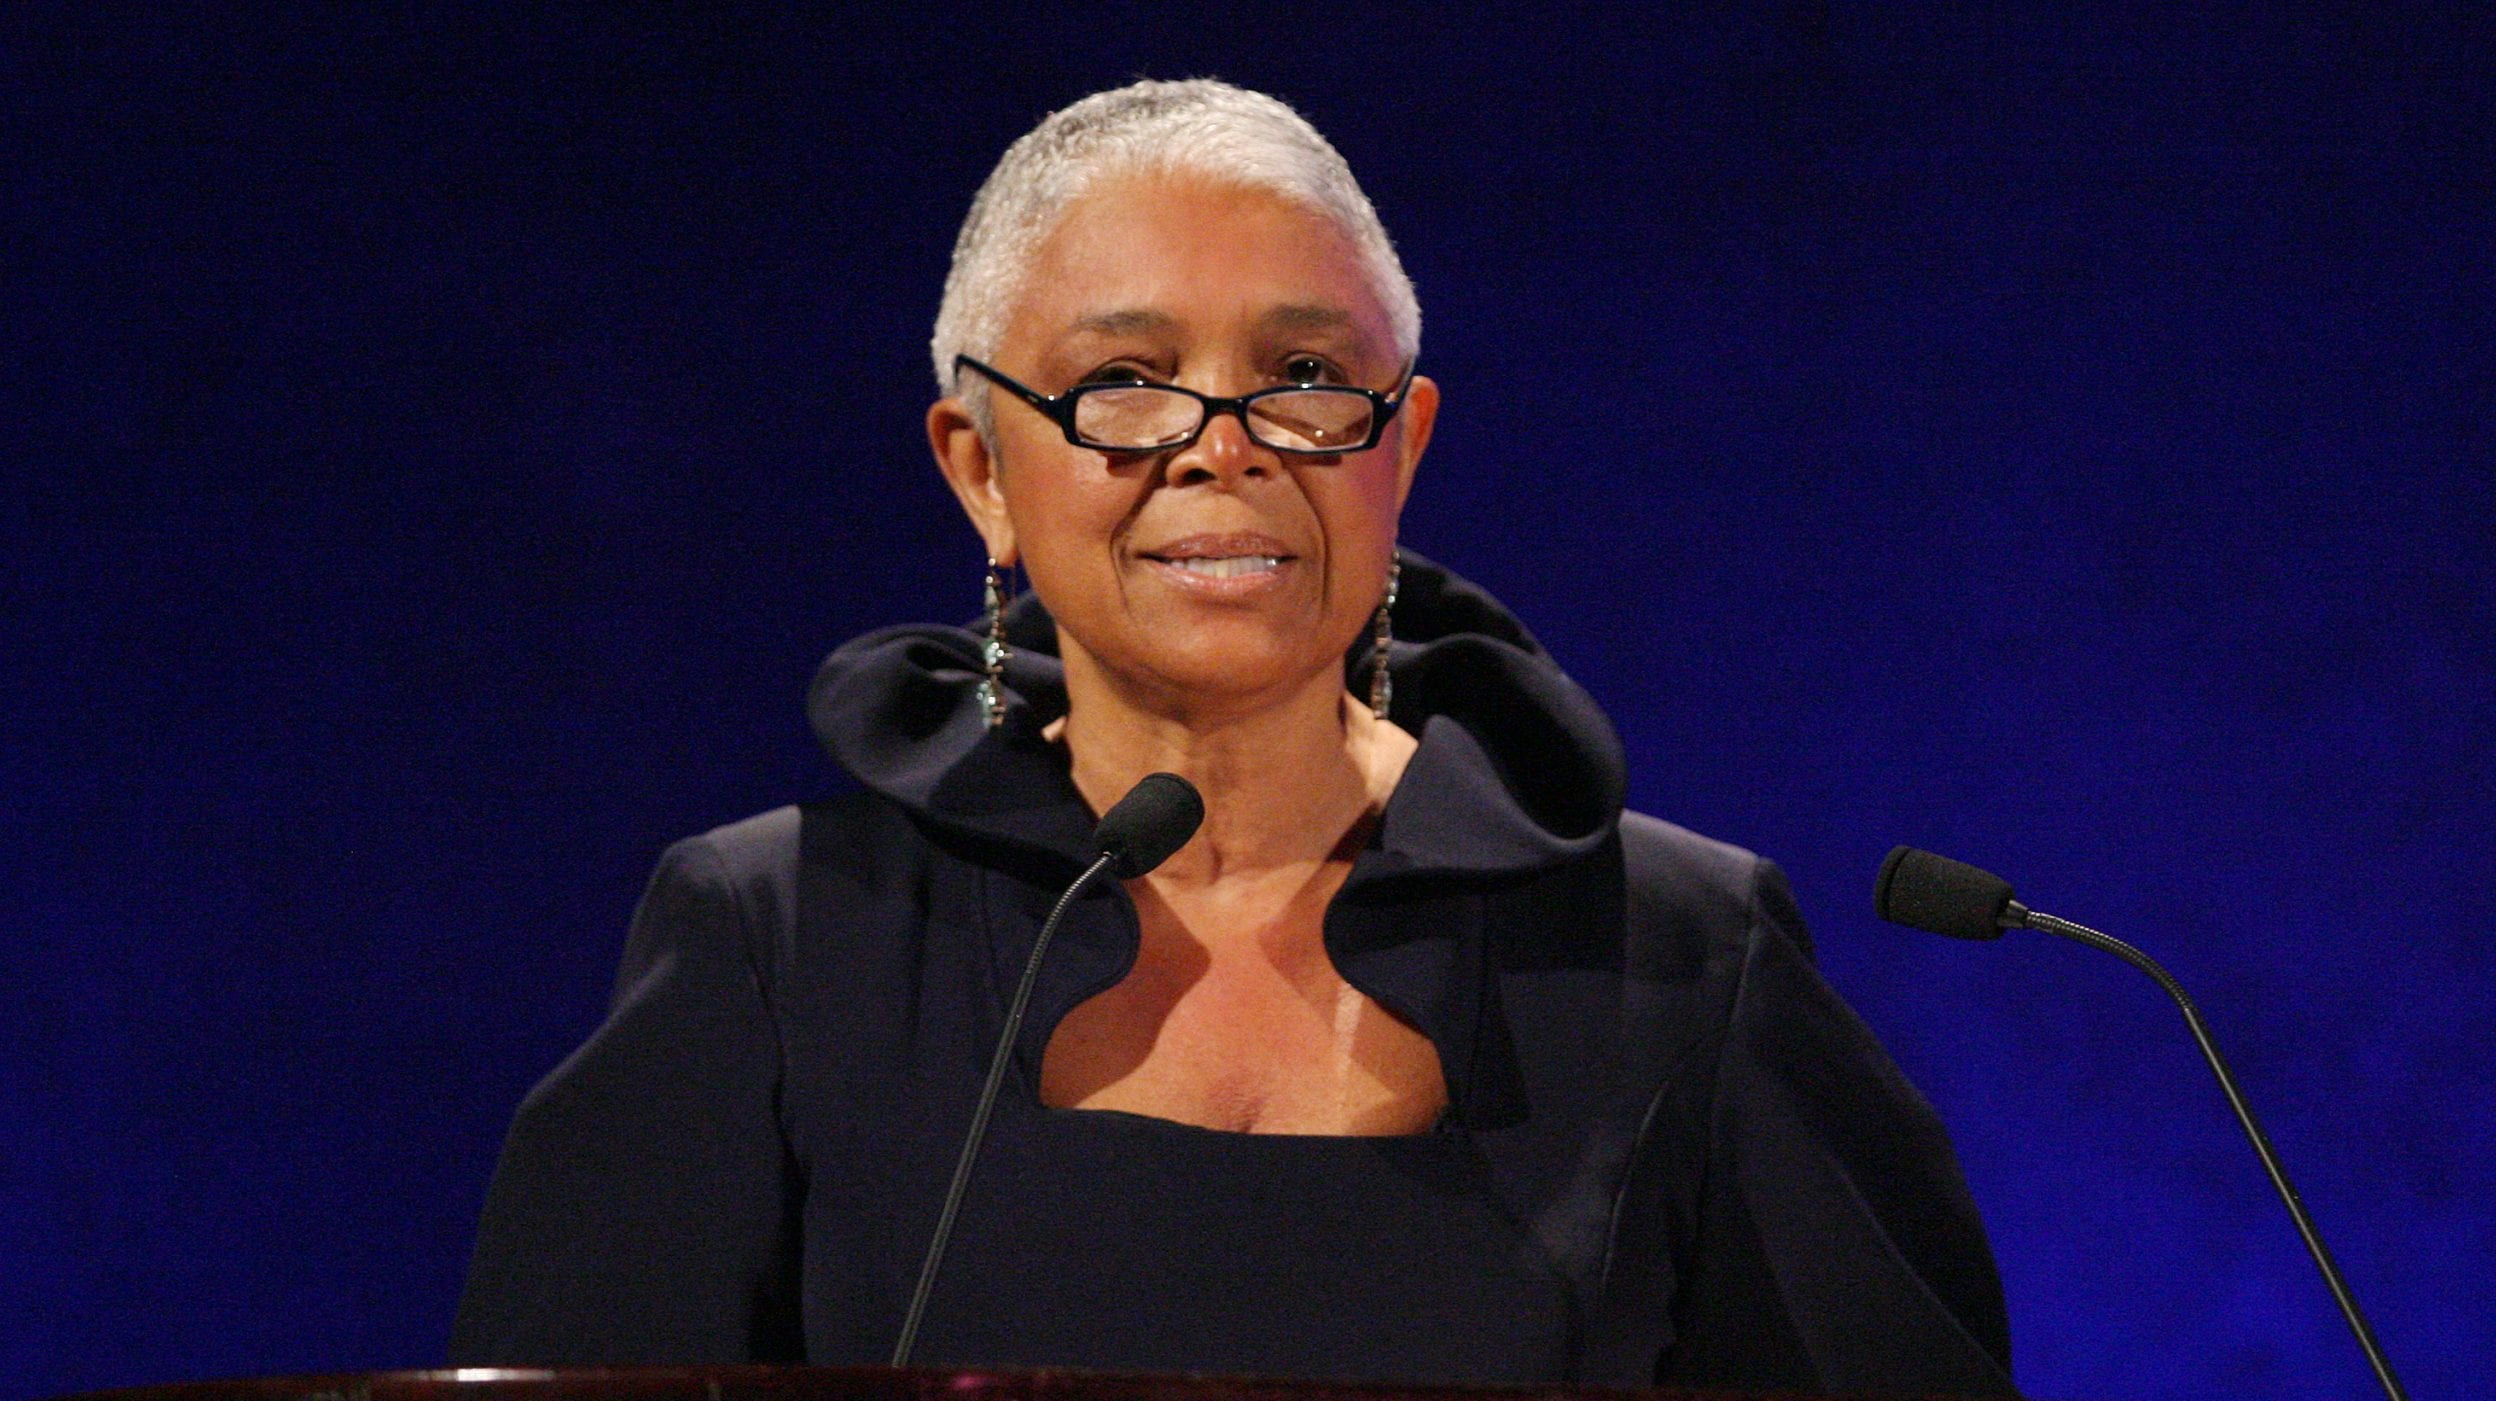 Camille Cosby slams #MeToo in new interview: 'They need to clean up their acts' - TheGrio